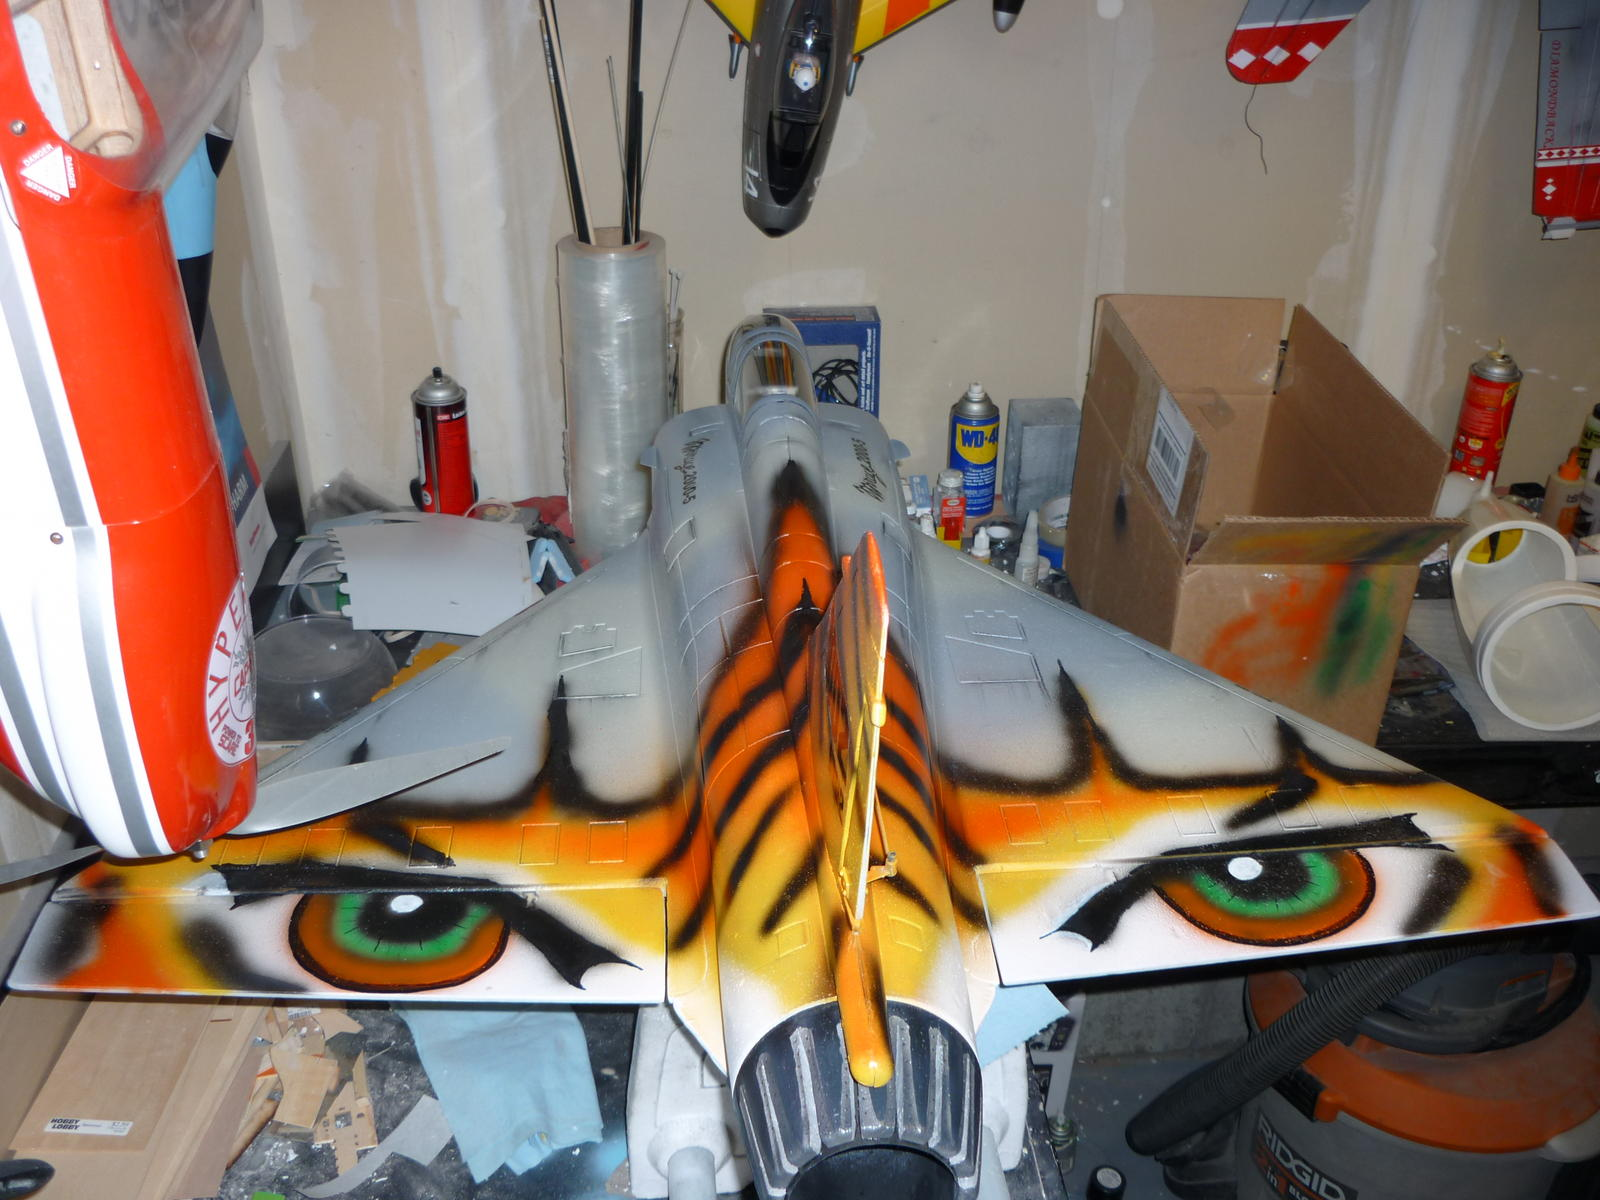 Trying to airbrush.